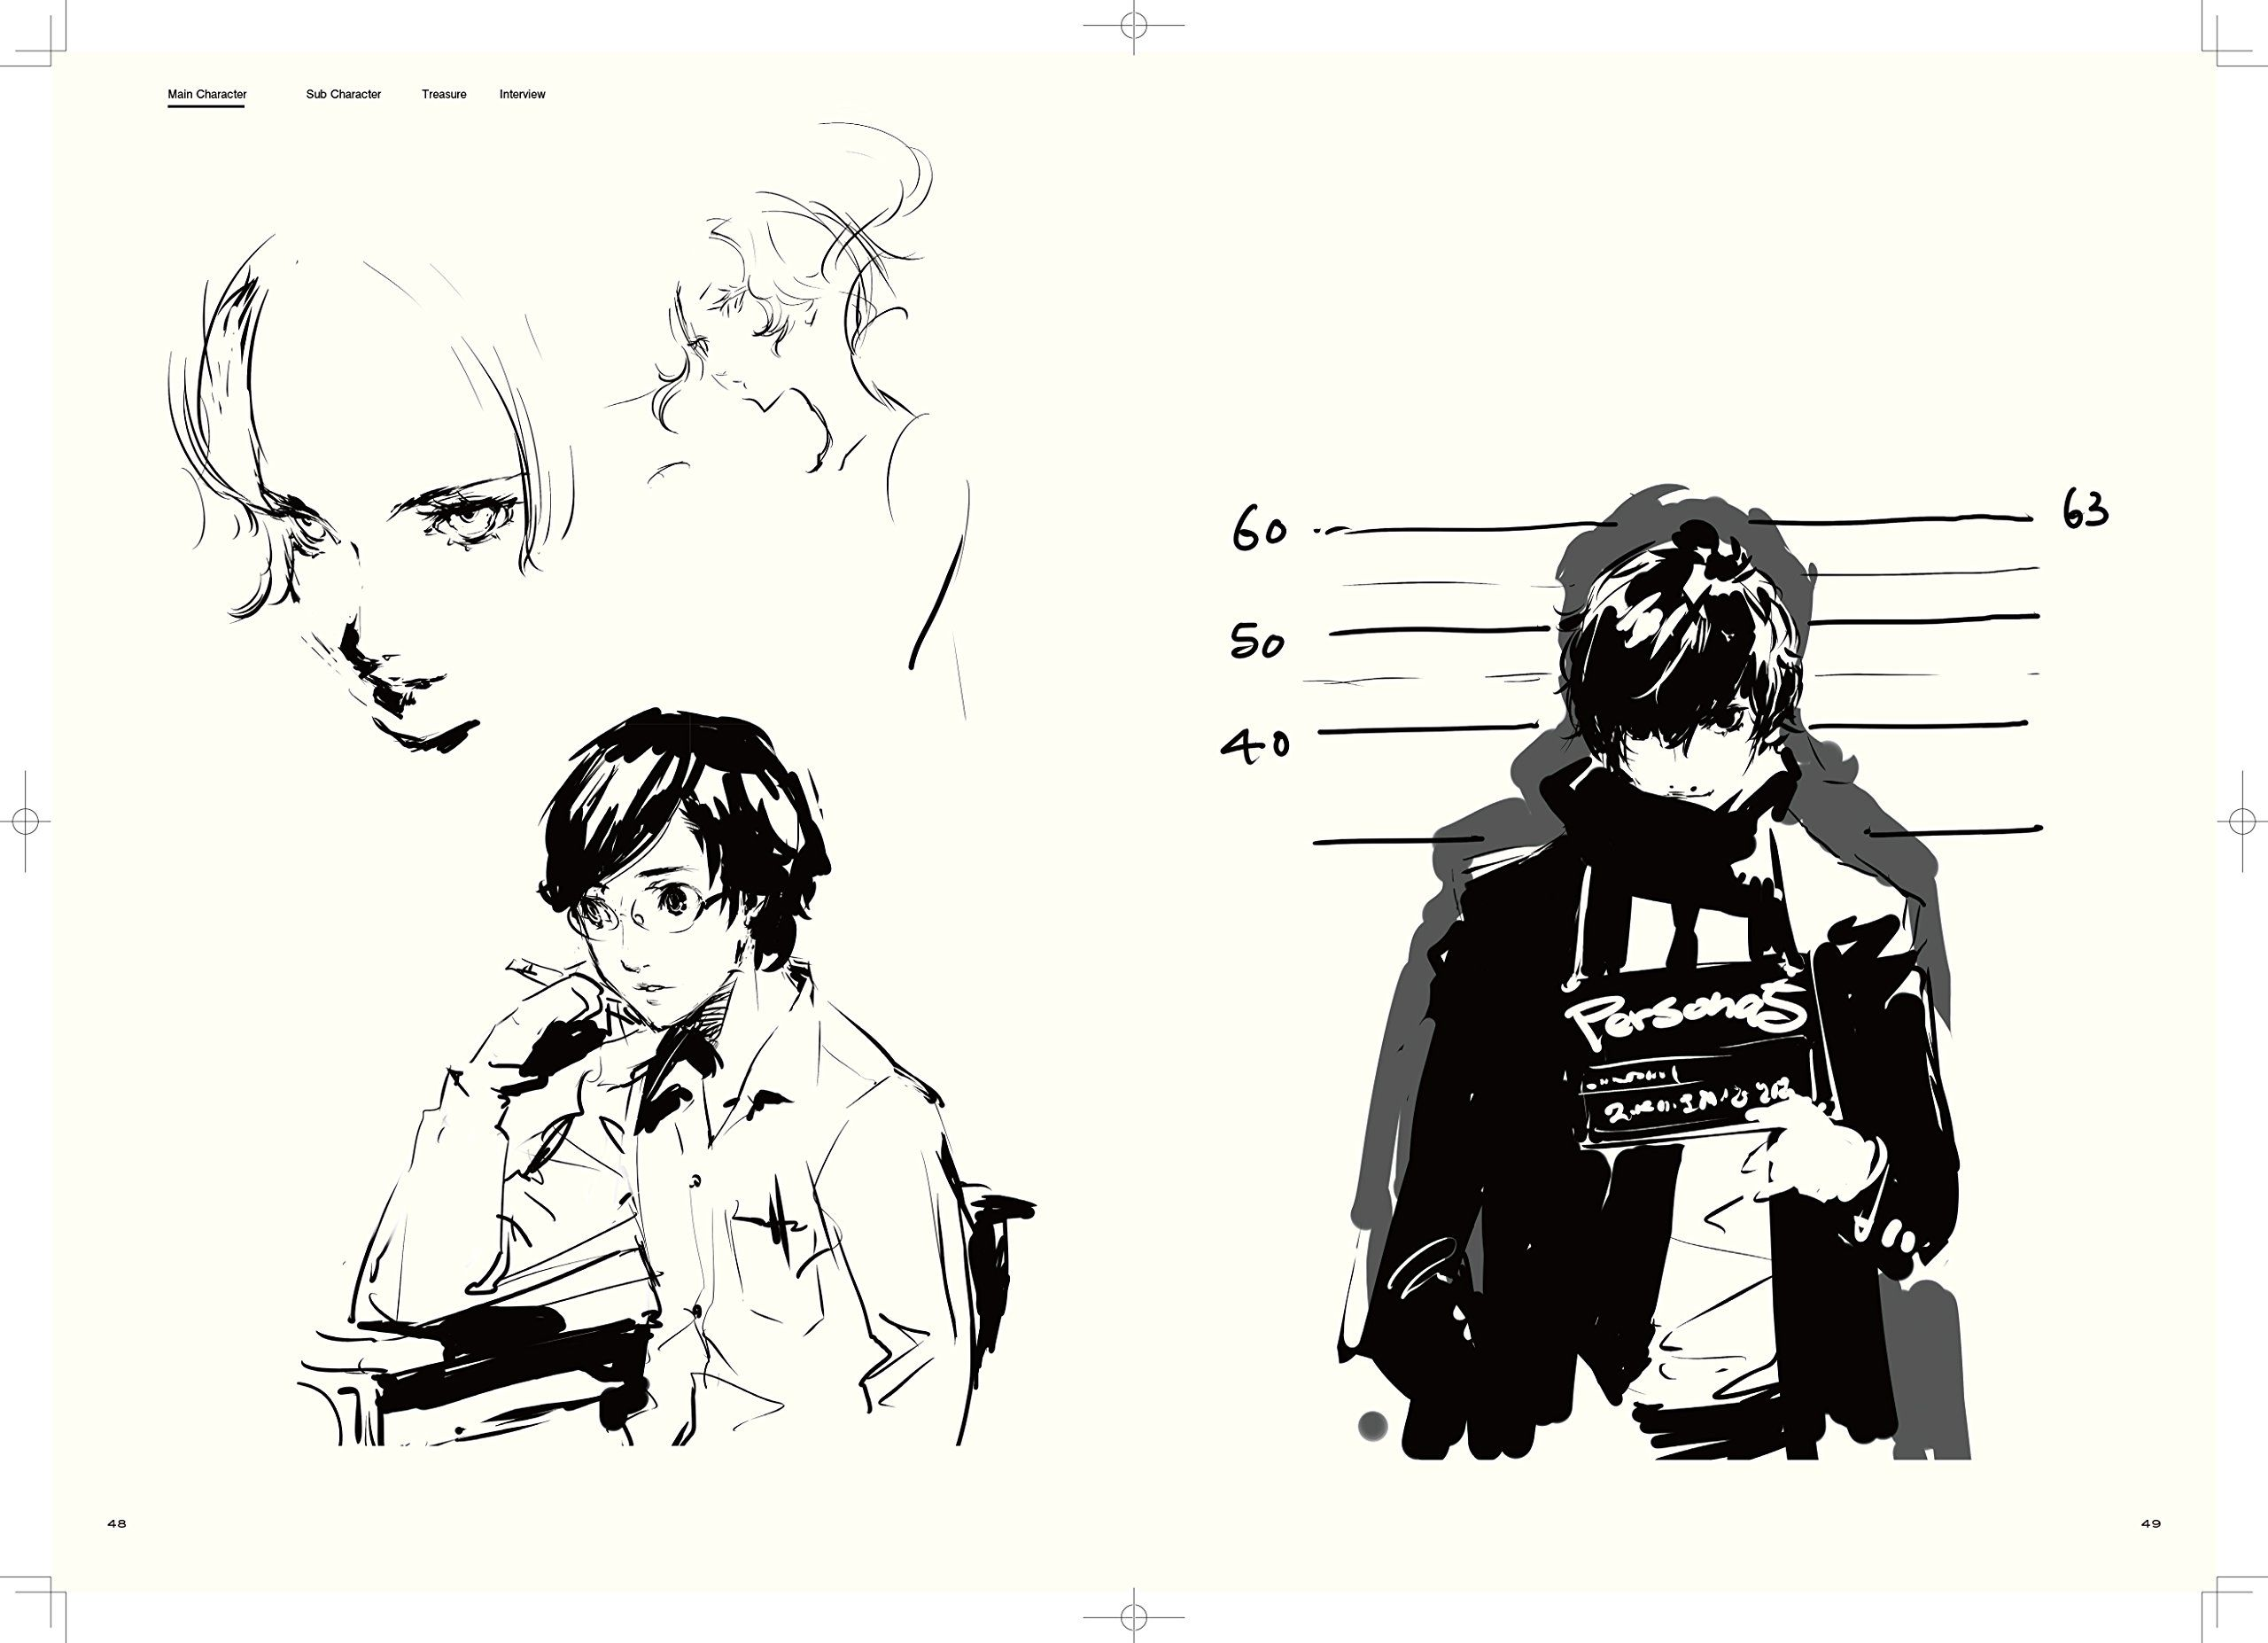 The Joker Line Art : The art of persona 5 styles and character design